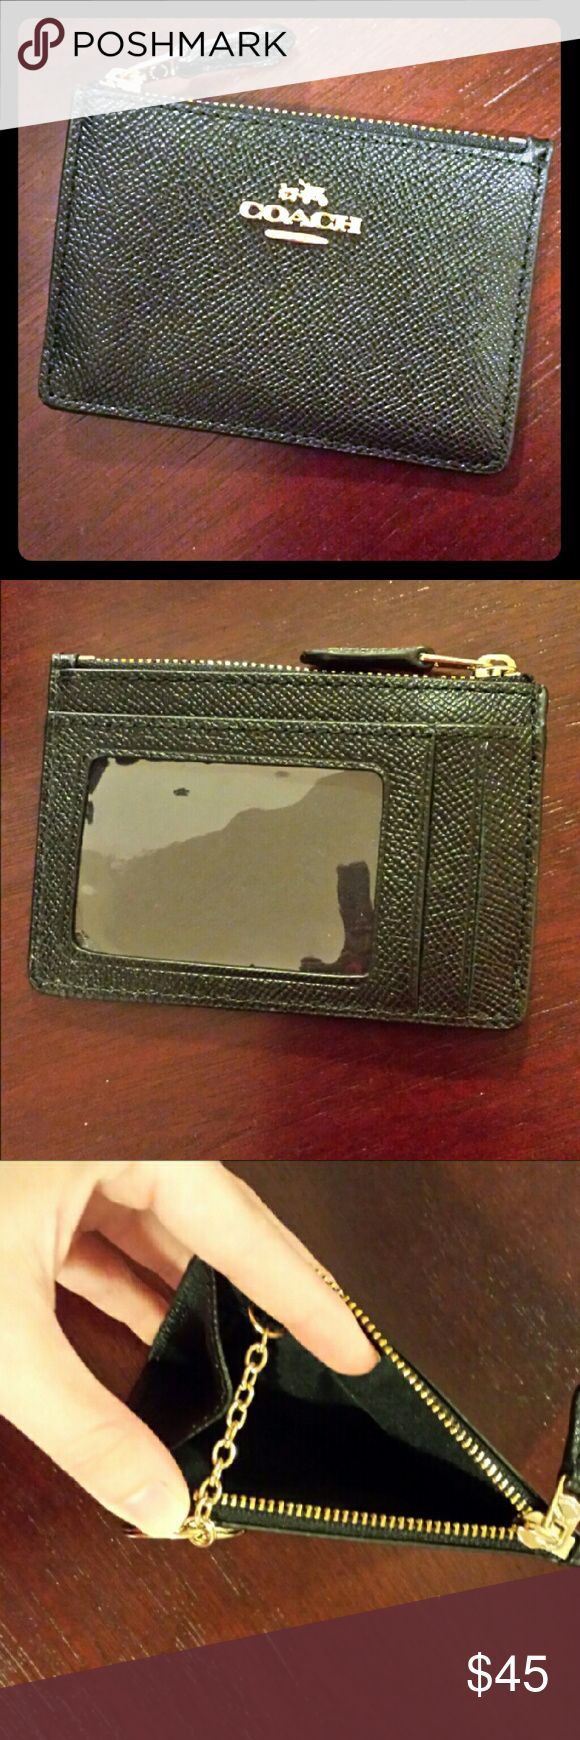 COACH Mini Skinny ID wallet COACH crossgrain leather black mini skinny wallet. Slots on back of wallet for cards and identification. Gold hardware with key fob inside. Zip pouch can be used for change or small loose items inside of purse. Only used twice, excellent condition. Coach Bags Wallets